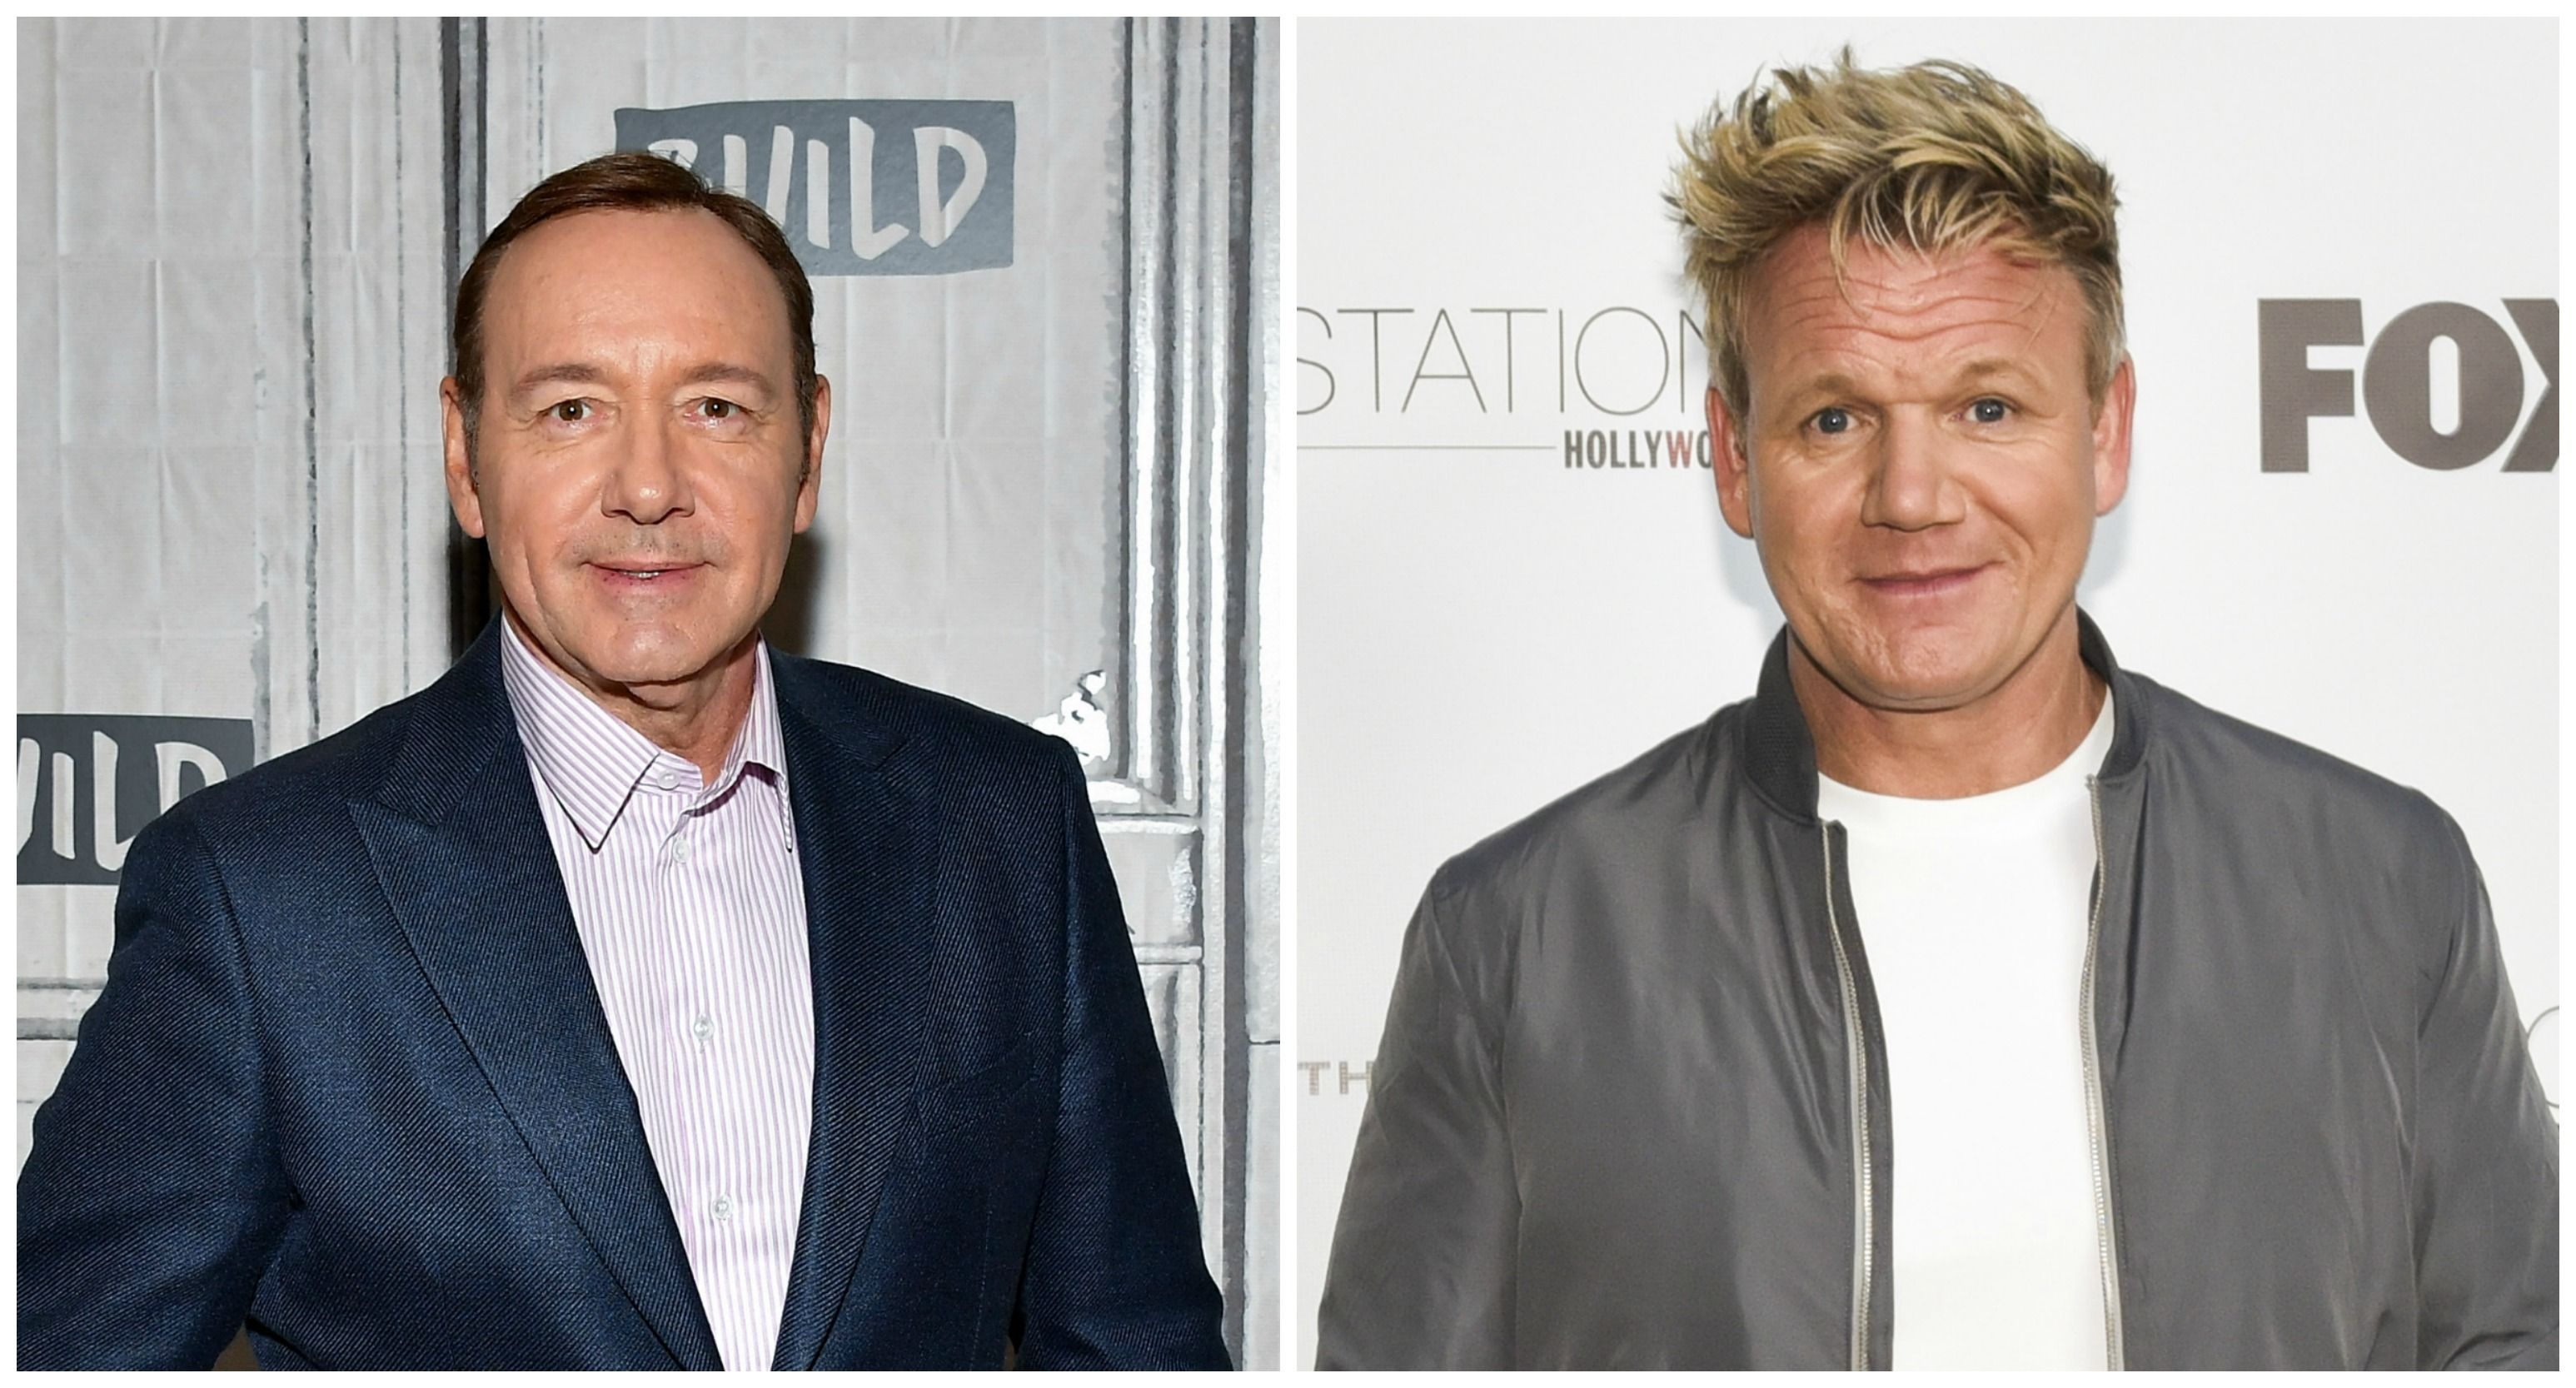 Kevin Spacey Just Outswore Gordon Ramsey—Delish.com